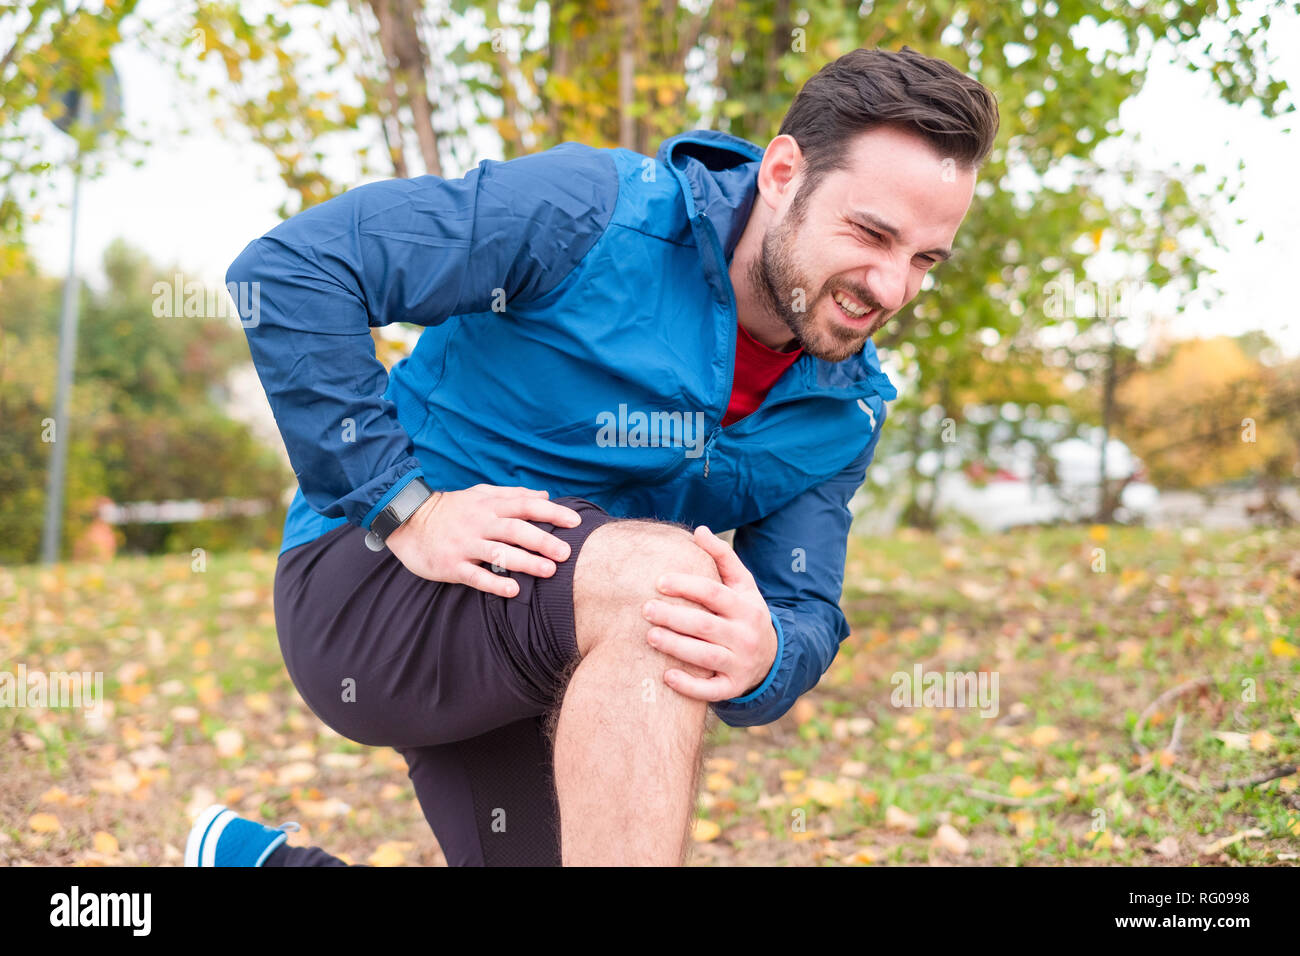 Athlete running outdoor and suffering for leg pain - Stock Image